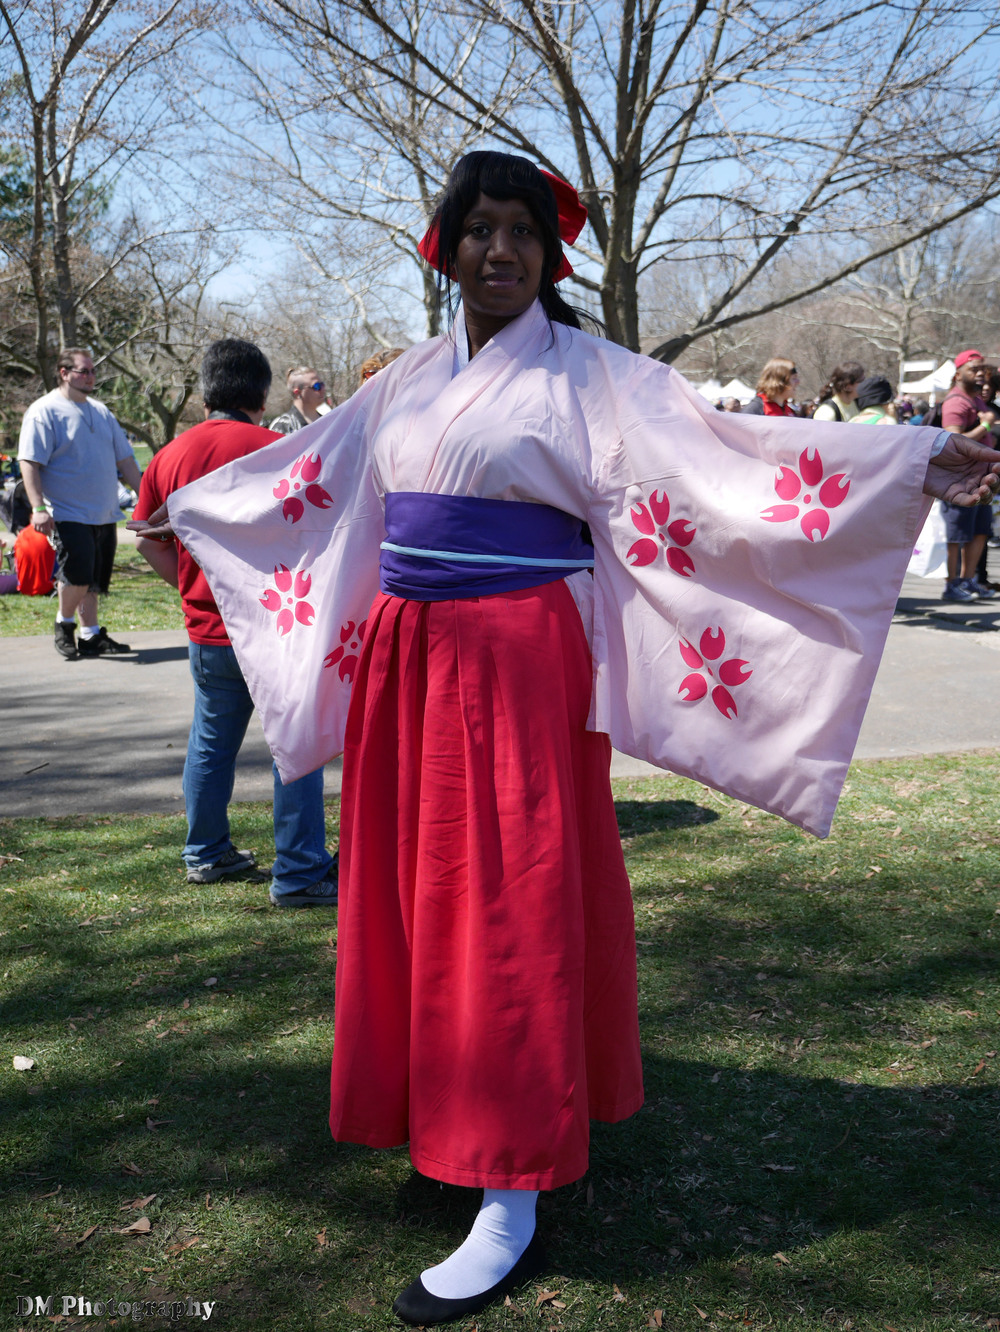 Sakura Shinguji cosplay from Sakura Wars (Sakura Taisen)